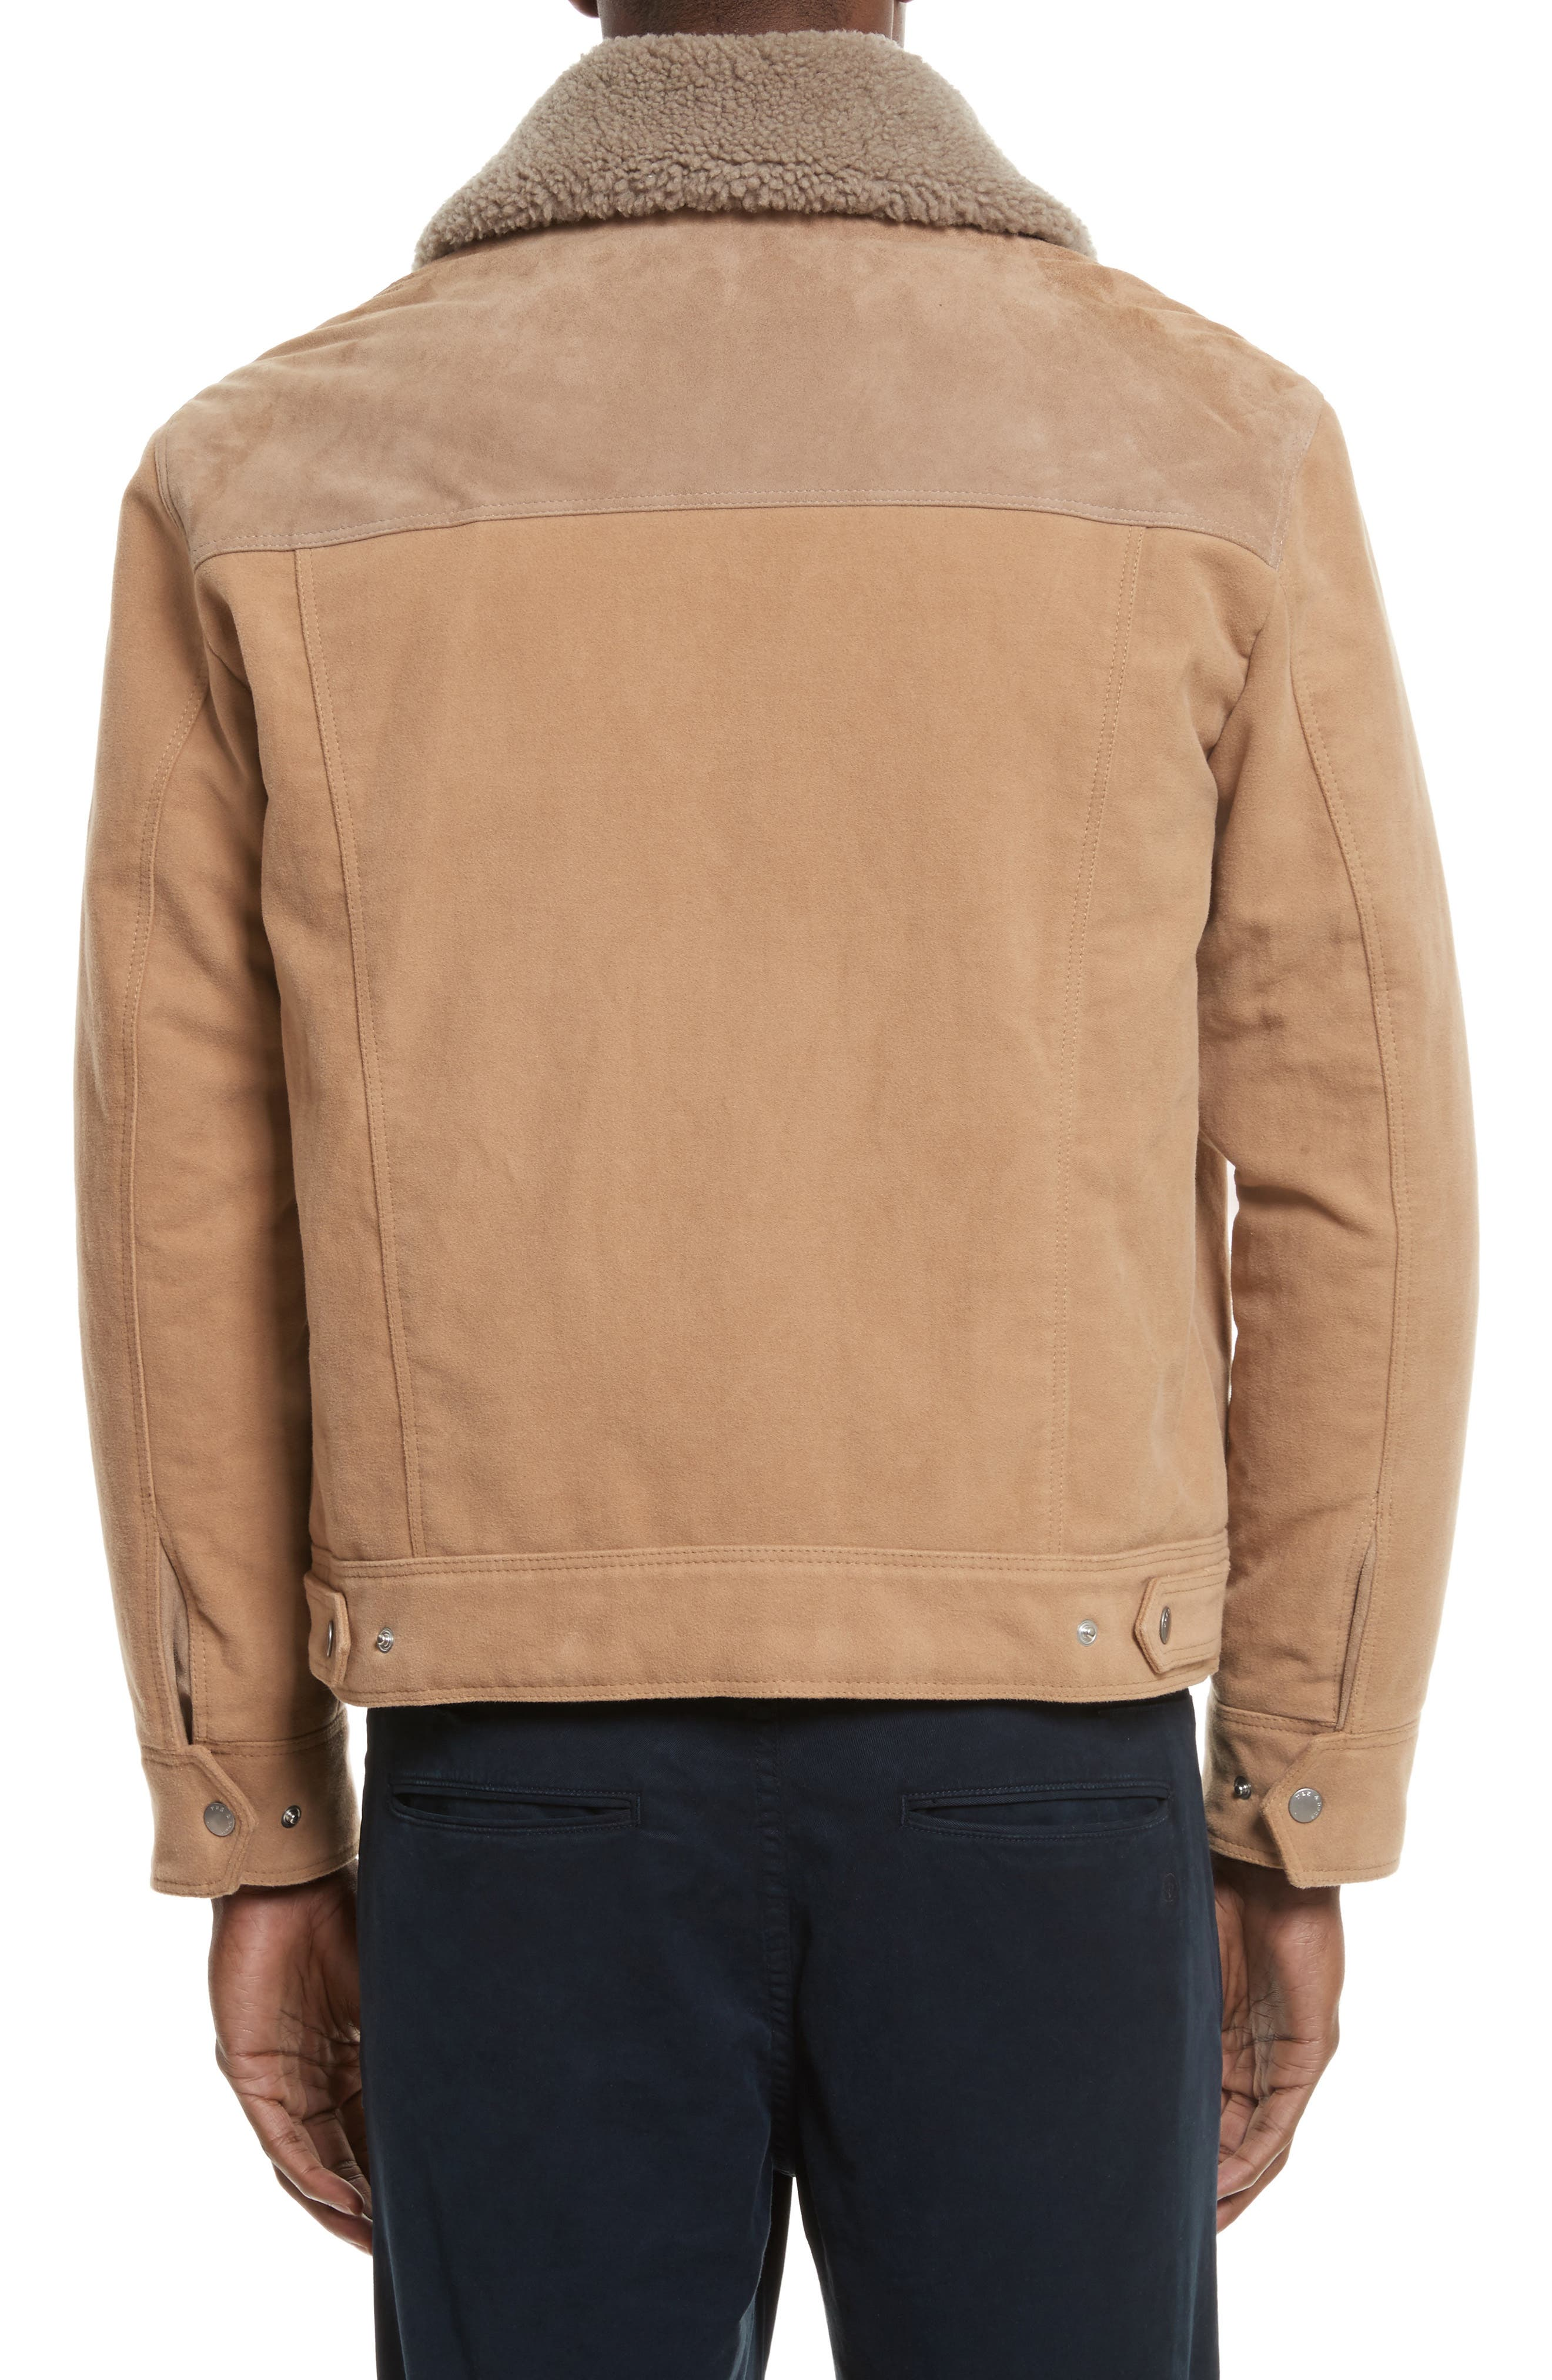 Matthew Work Jacket with Genuine Shearling Collar,                             Alternate thumbnail 2, color,                             Camel